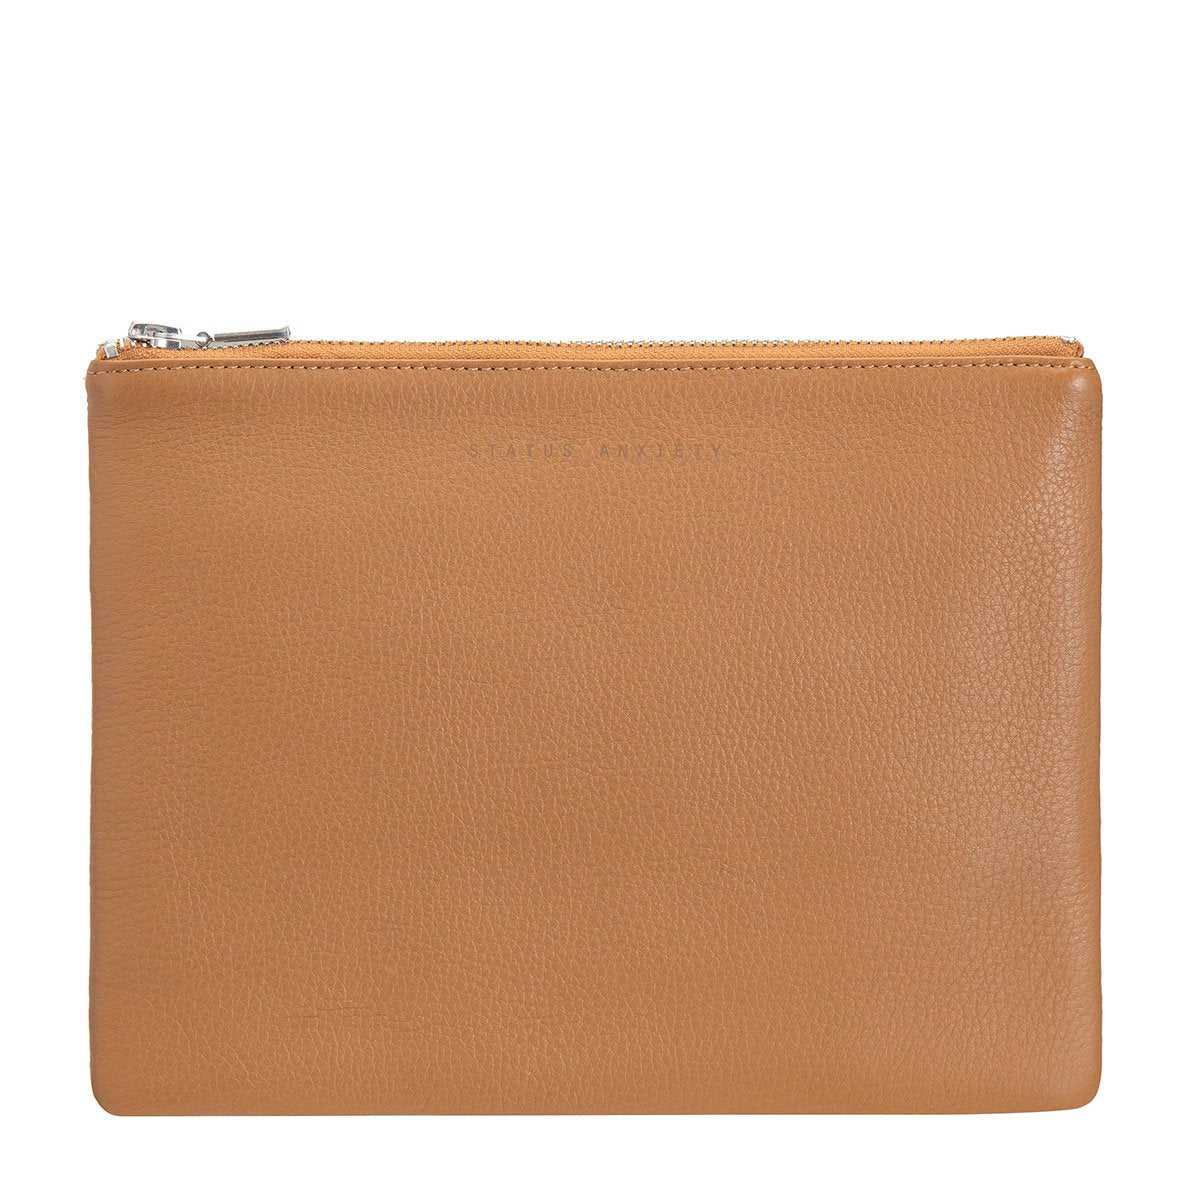 Antiheroine Wallet // Tan